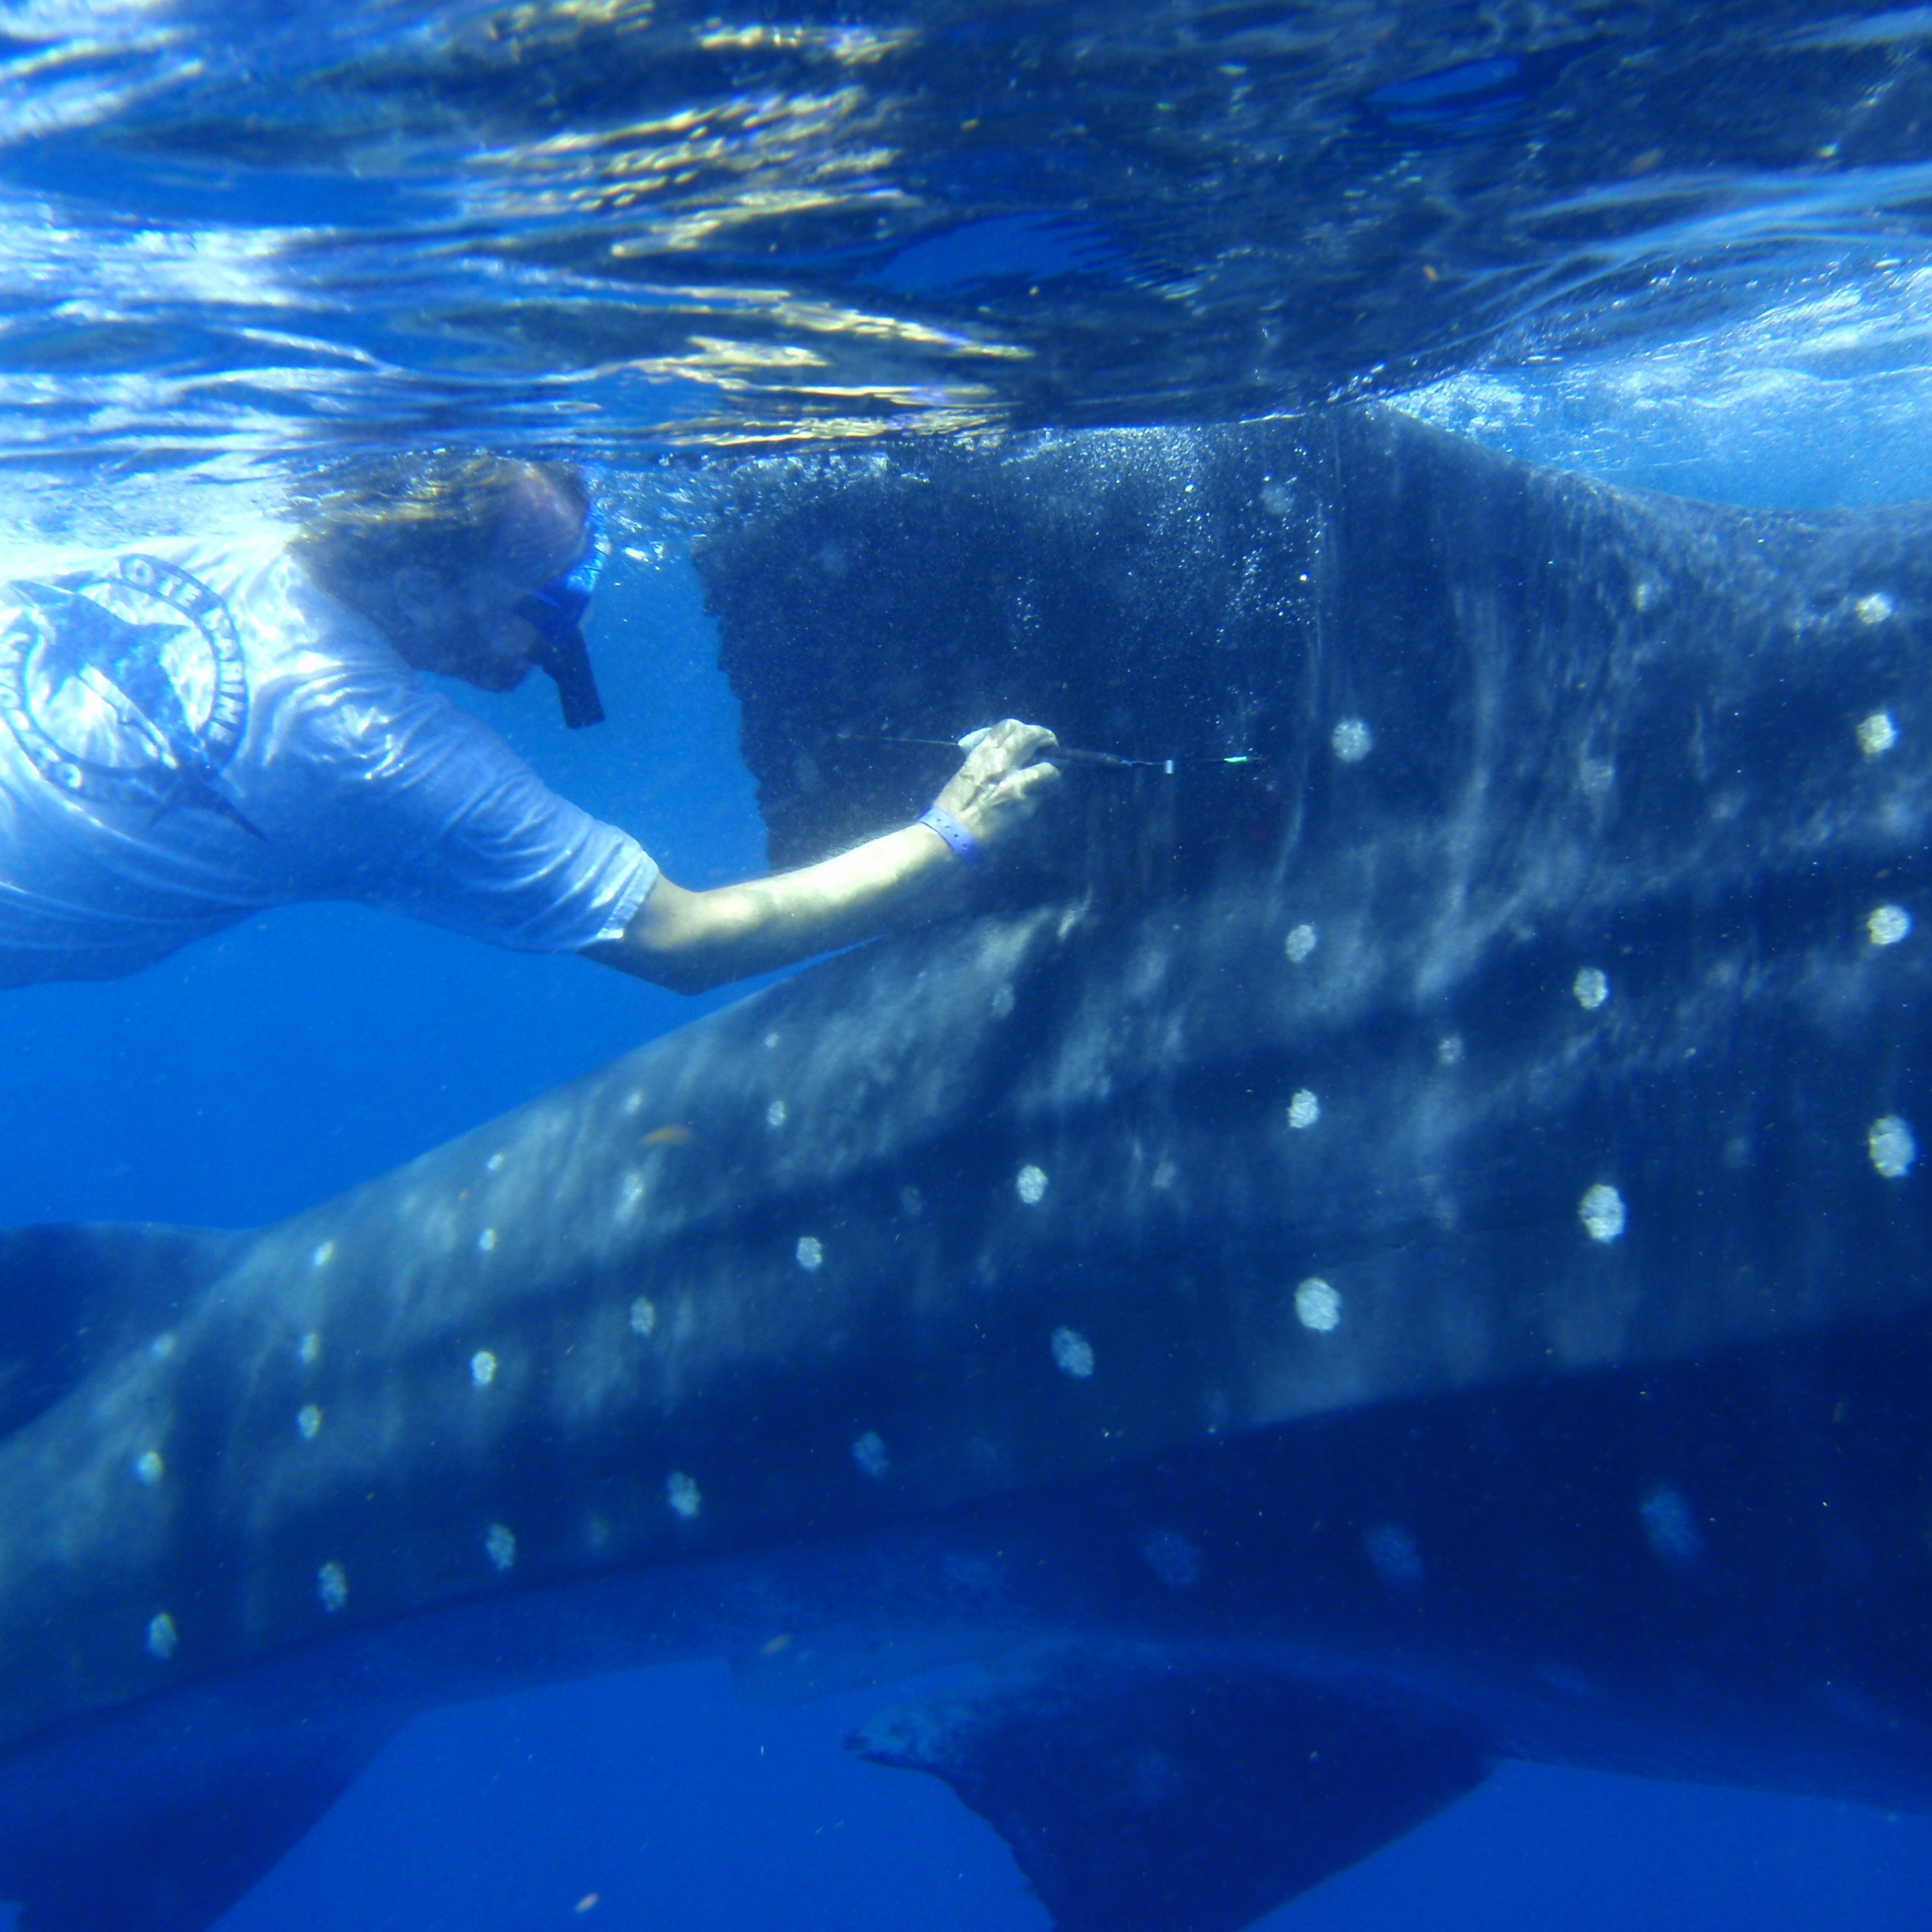 Robert Hueter tags a whale shark off the coast of Mexico. The tags measure location, depth and water temperature, then relay the data back to a lab.